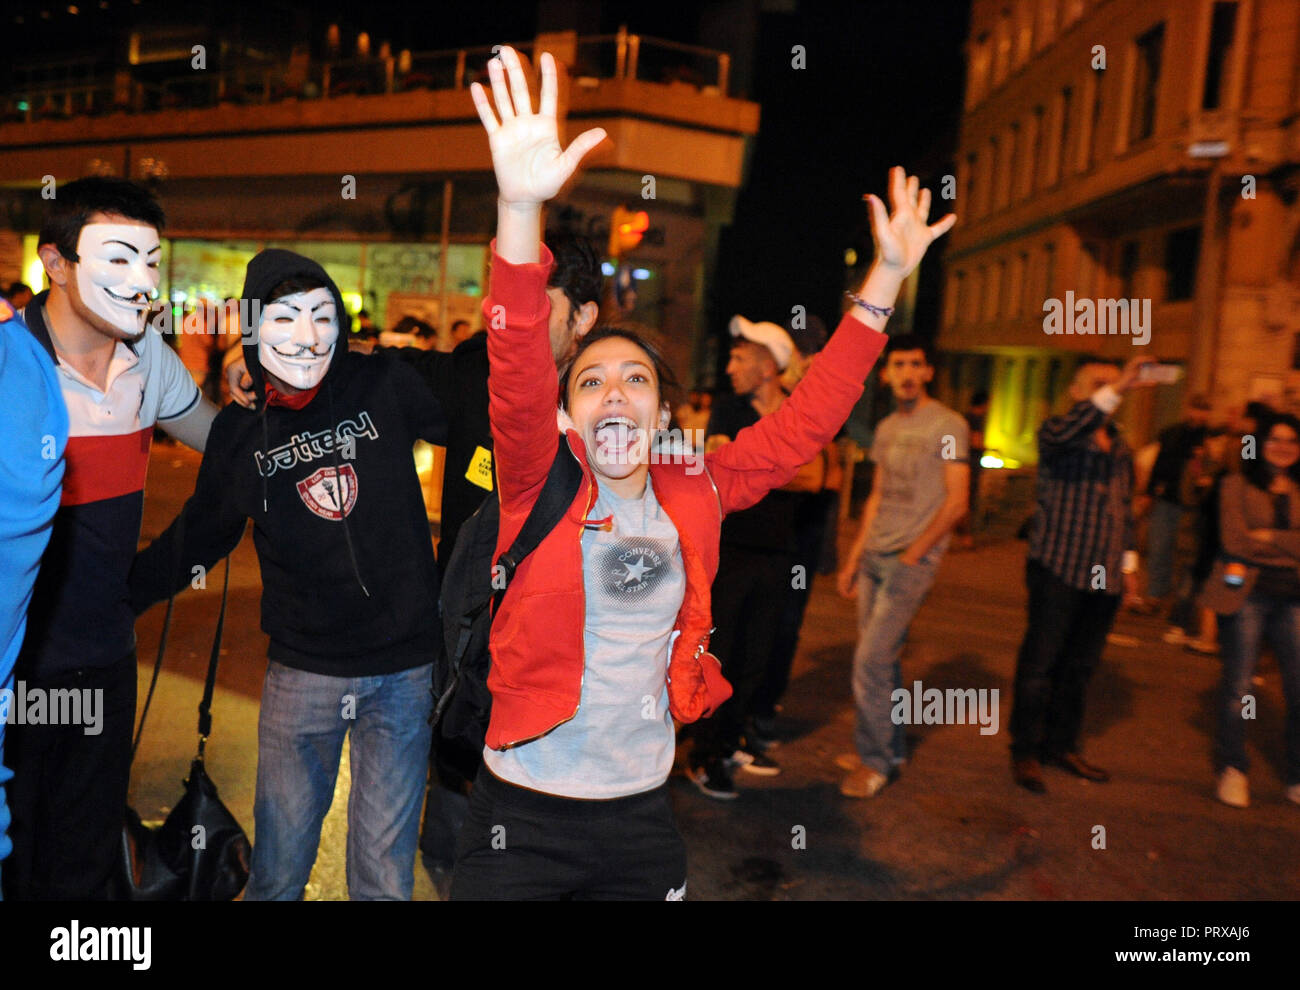 June 7, 2013 - Istanbul, Turkey: Several Turkish demonstrators drink beers and celebrate loudly in public space as a way to protest against a new law prohibiting the take-away sale of alcoholic beverages between 10 pm and 6 am. Scene de celebrations dans la rue principale de Taksim, Istiklal, durant l'occupation du parc Gezi *** FRANCE OUT / NO SALES TO FRENCH MEDIA *** - Stock Image